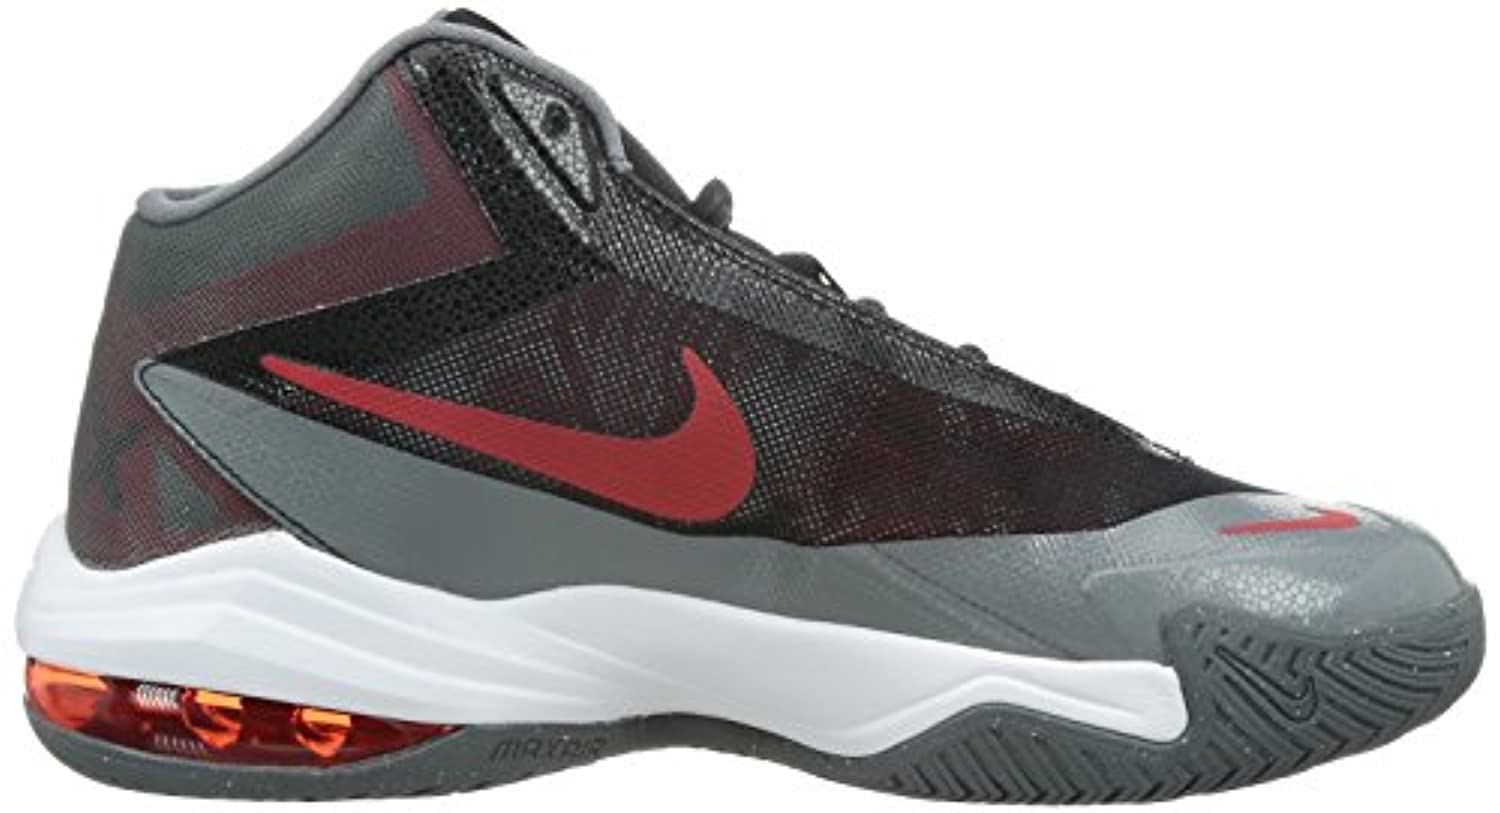 promo code for mens air max audacity basketball shoes 23266